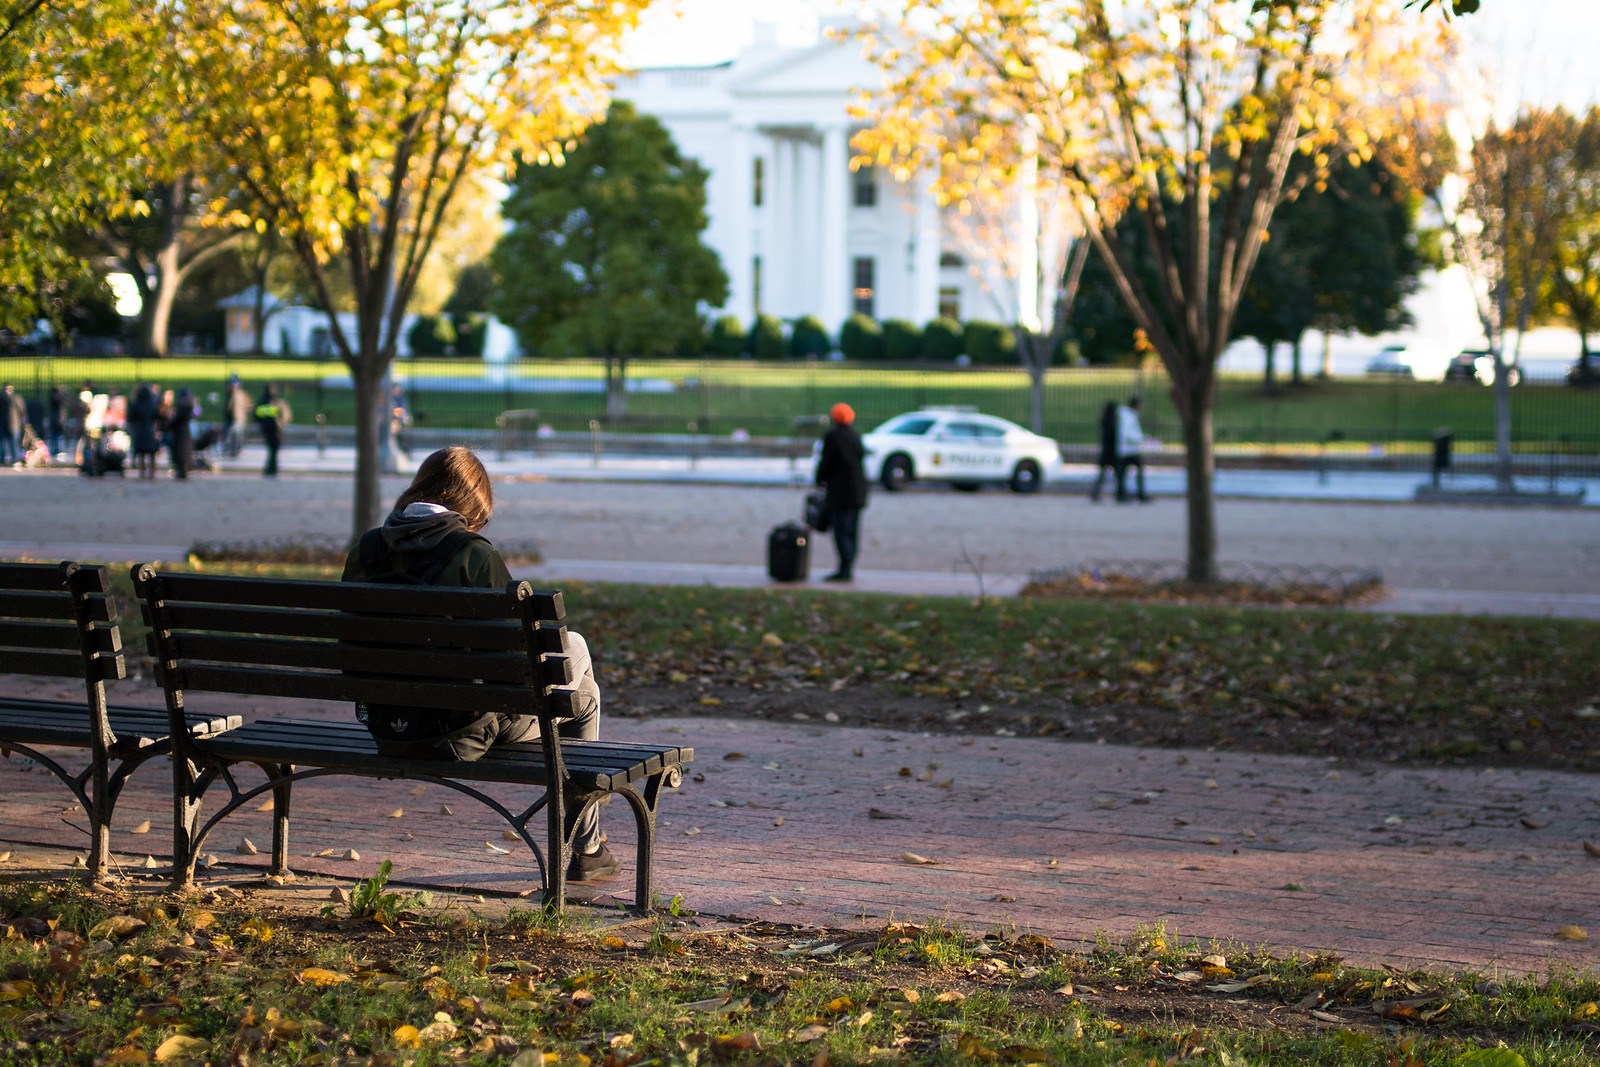 20171110_WashingtonDC_11